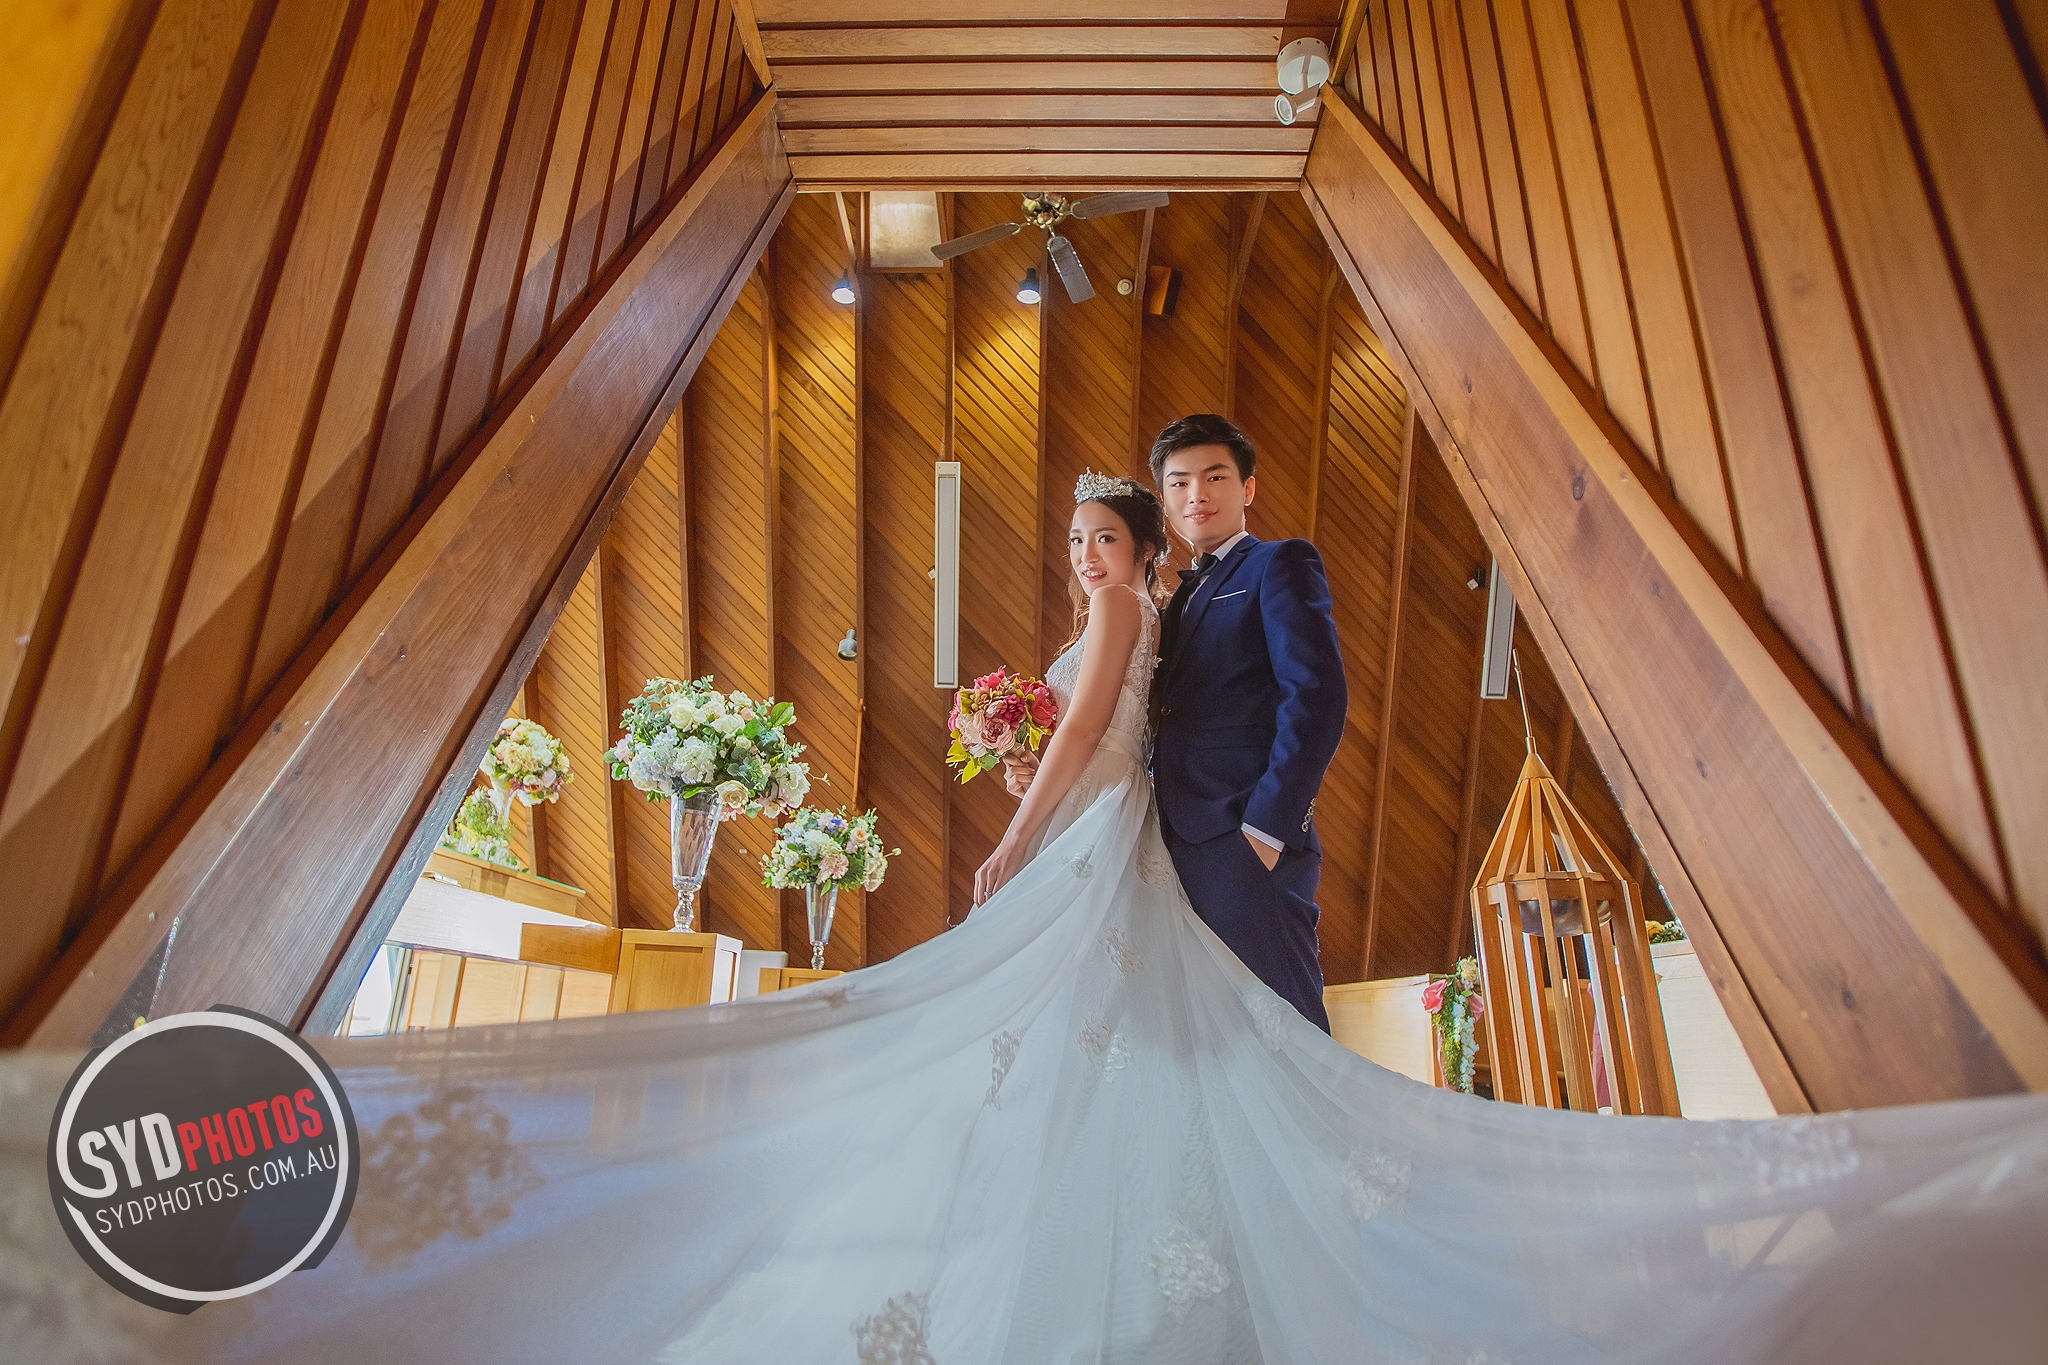 ID-103137-20180924-268.jpg, By Photographer Prewedding, Created on 14 Dec 2018, SYDPHOTOS Photography all rights reserved.